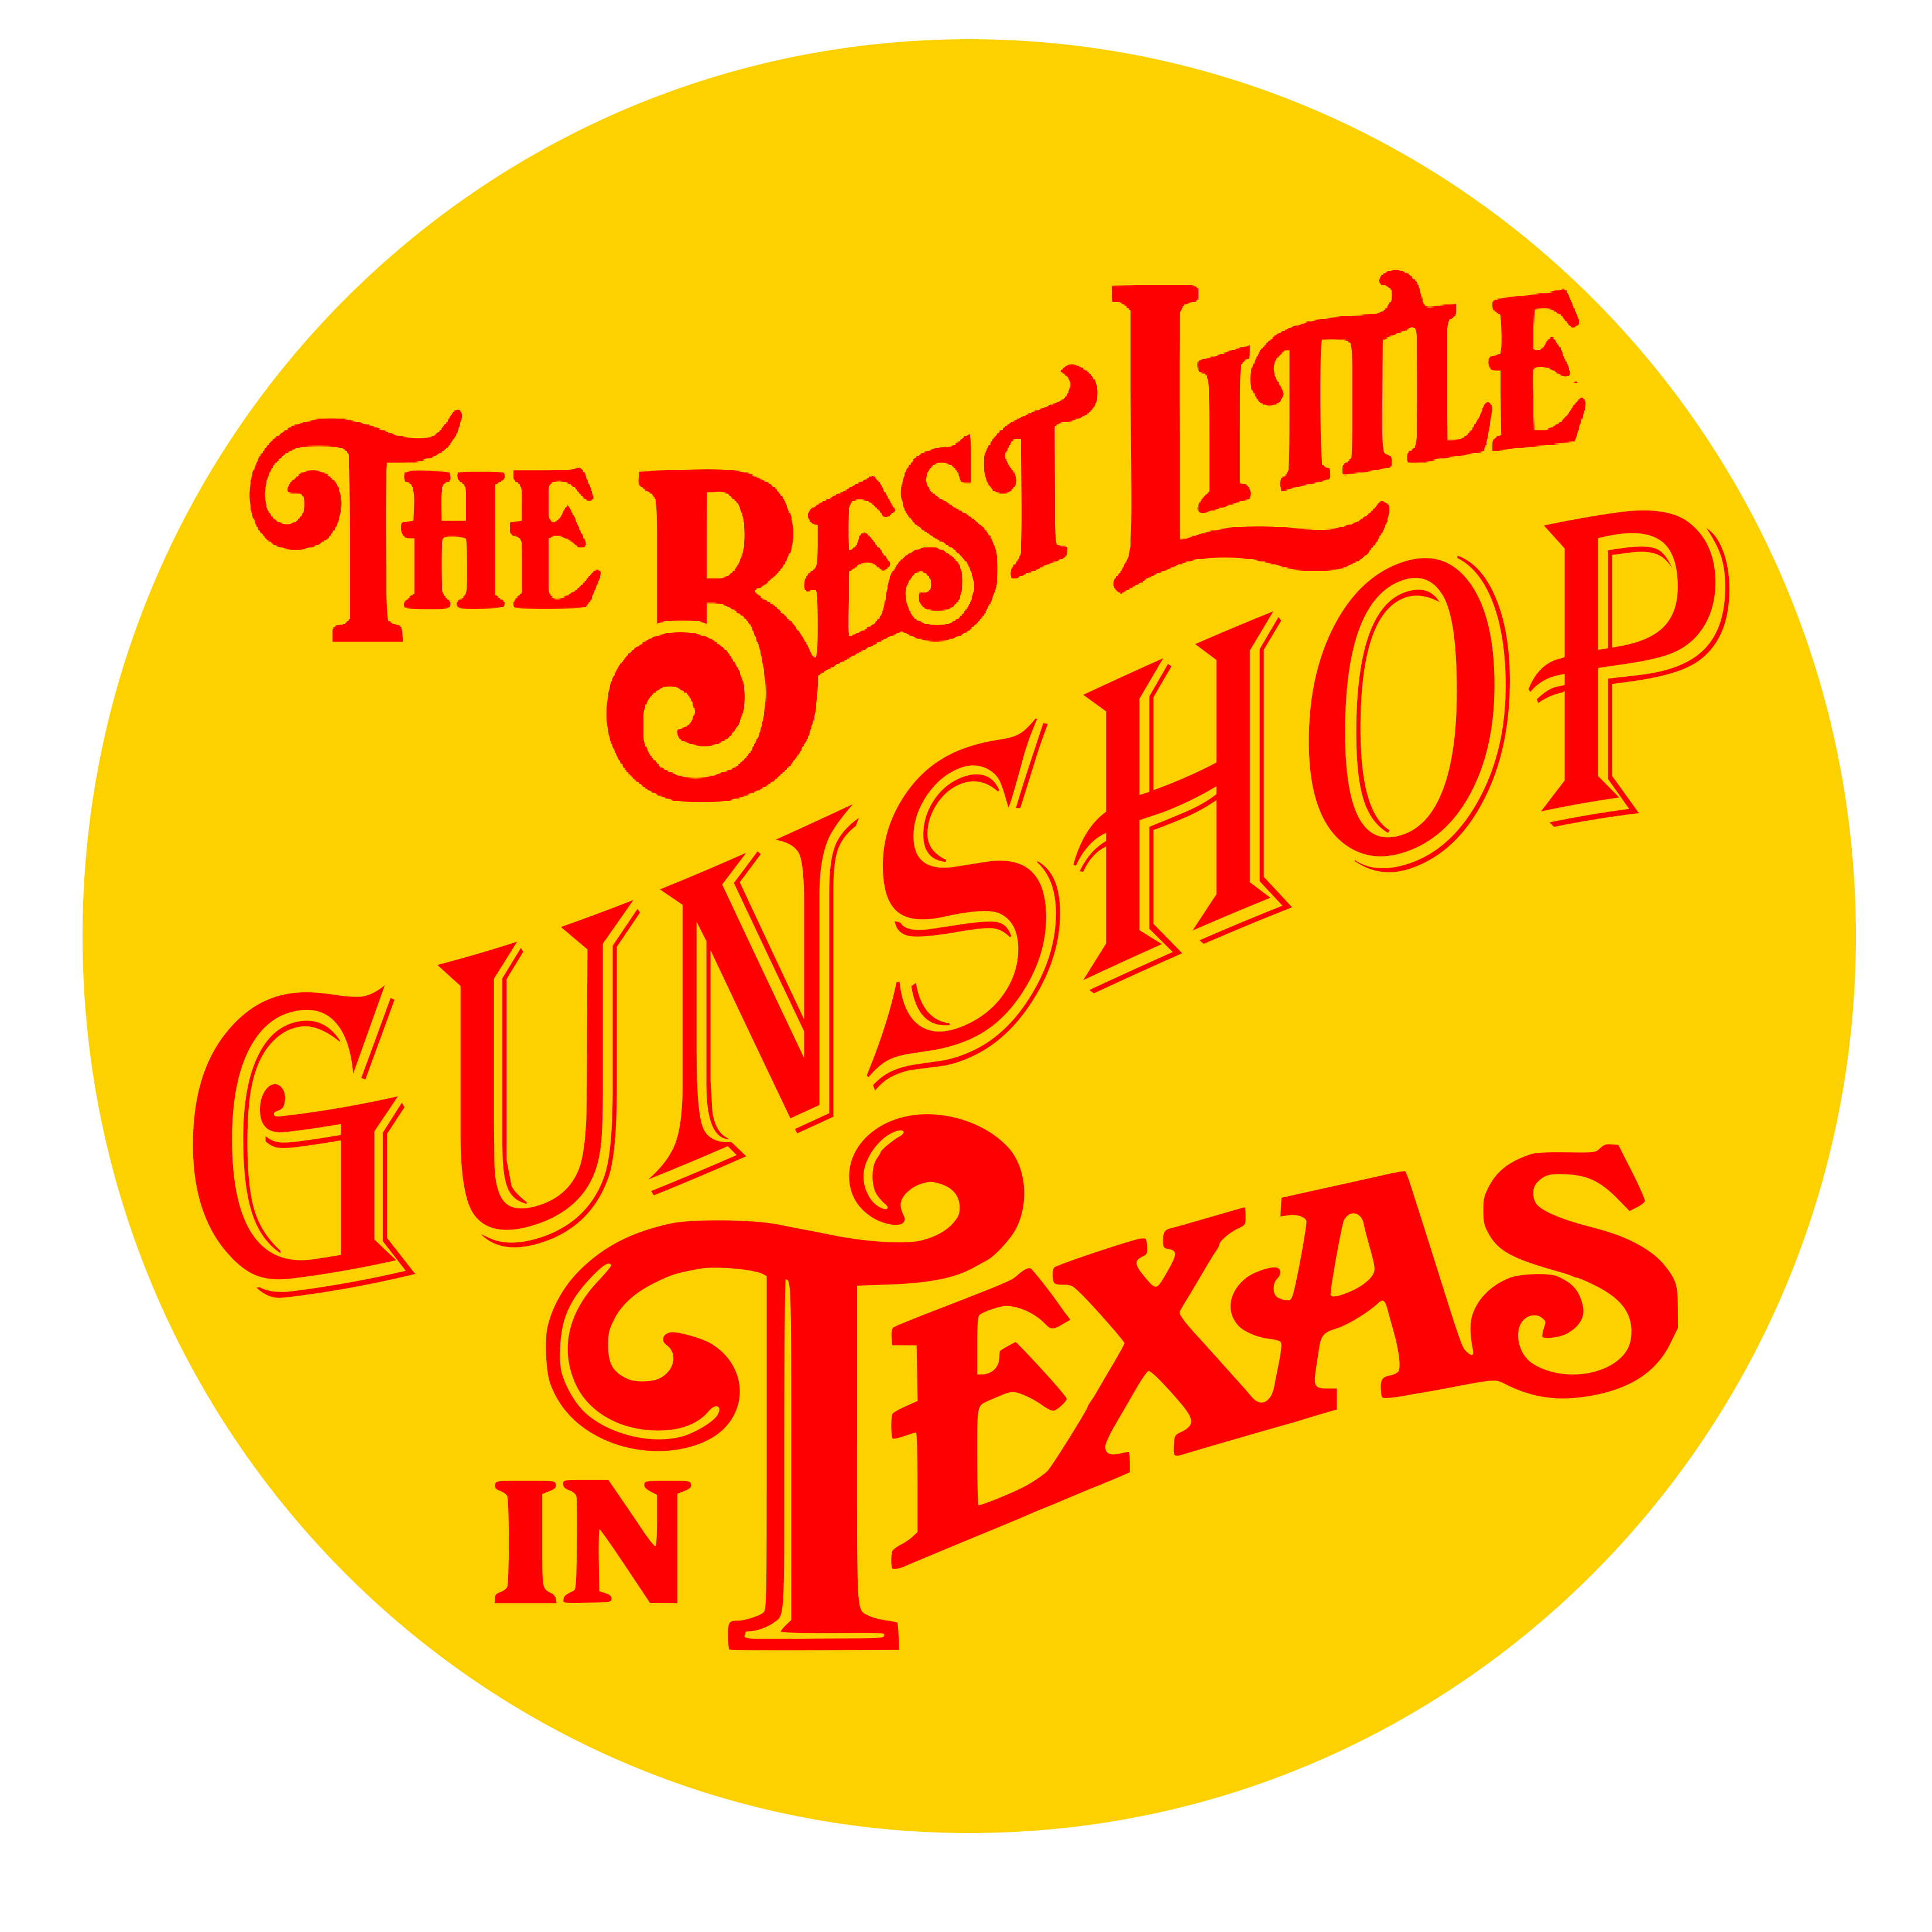 Best Little Gun Shop In Texas